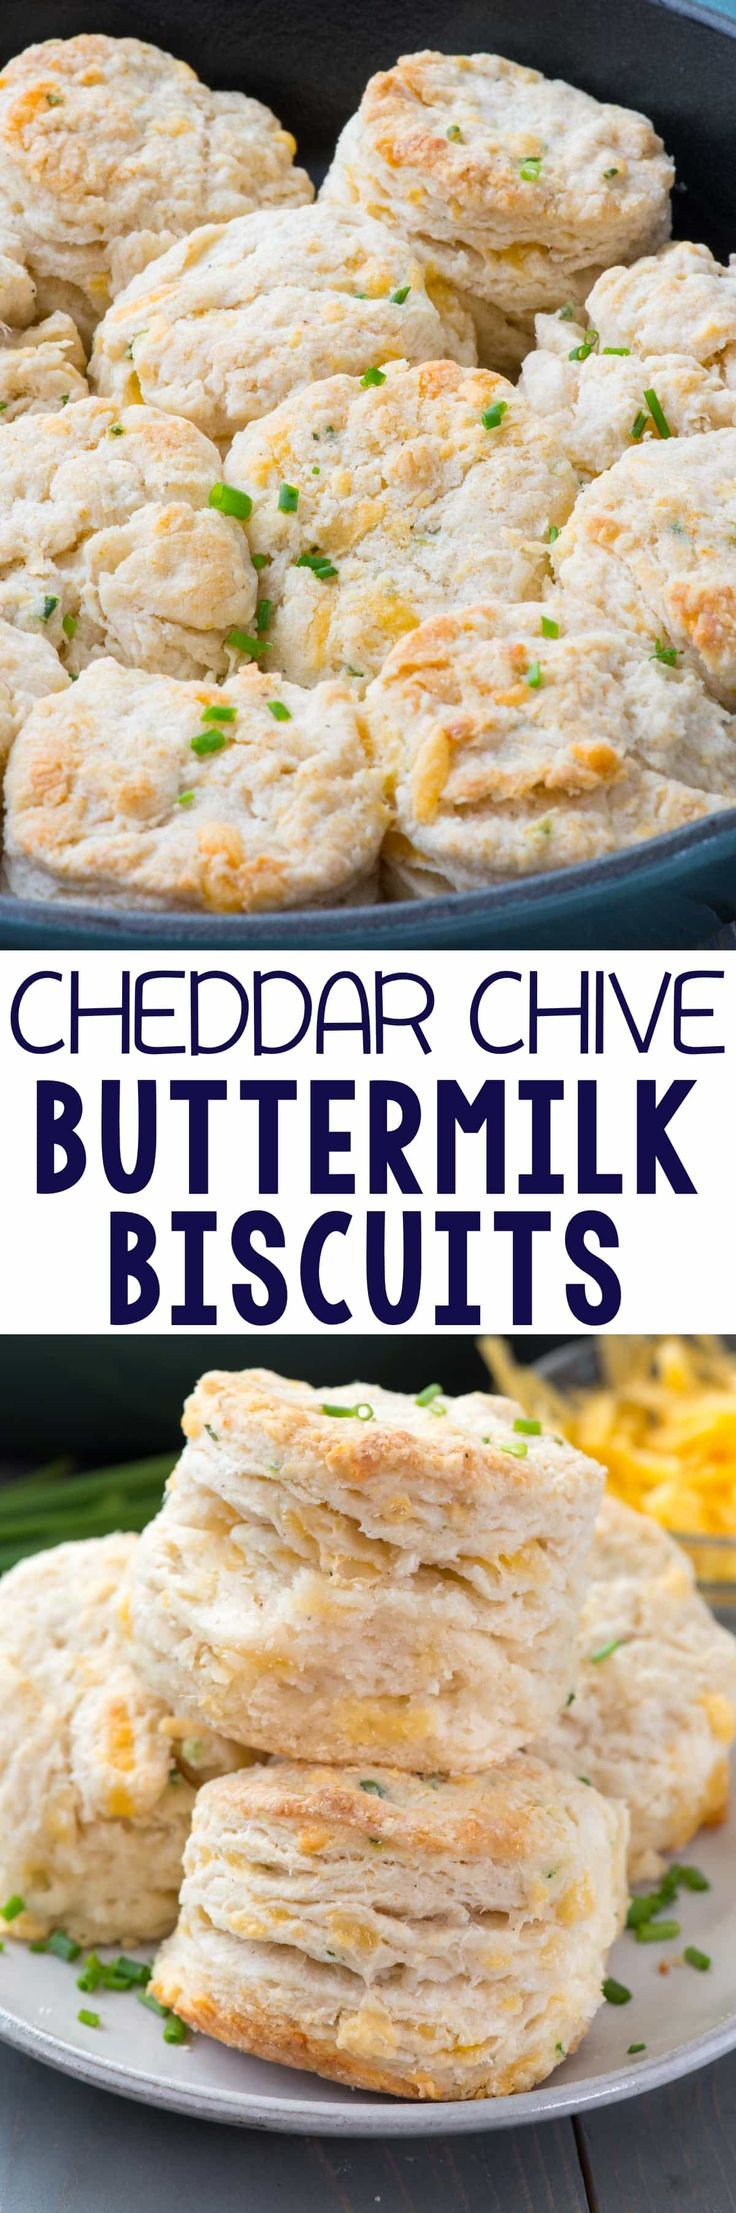 Cheddar Chive Biscuits - this easy buttermilk biscuit recipe is FULL of cheddar cheese and chives! We eat them for breakfast with bacon or as a side dish with dinner!